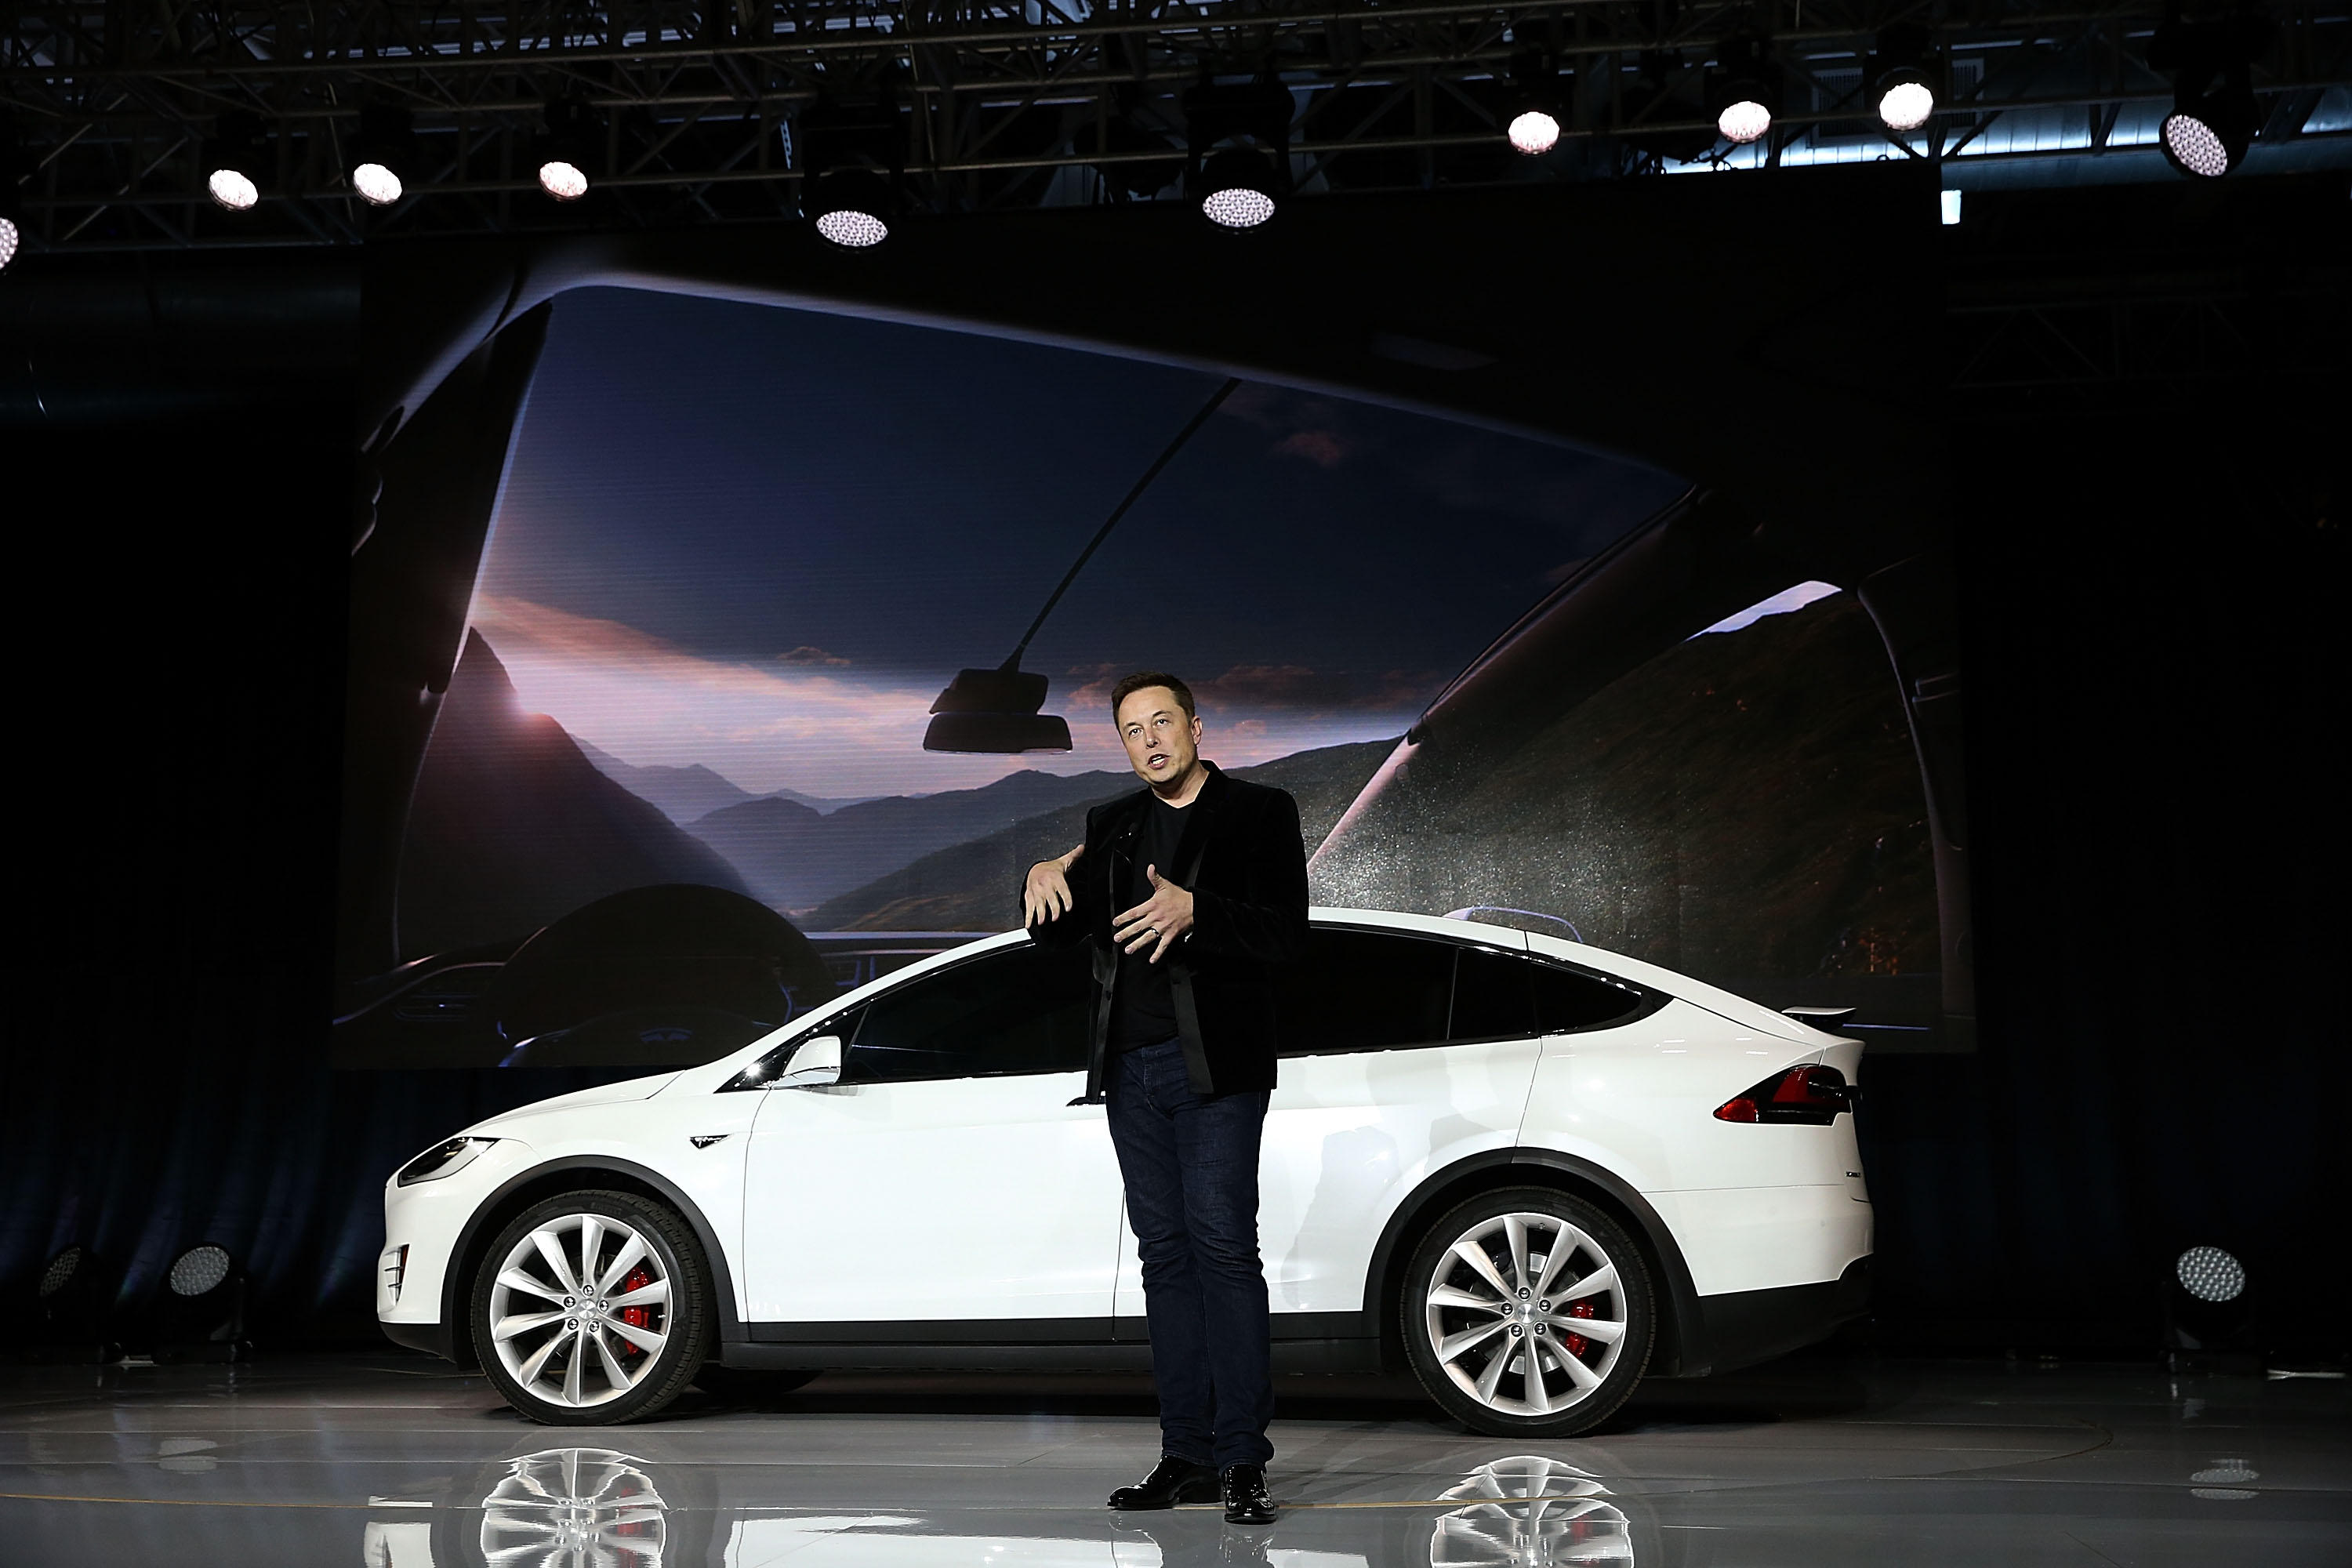 Tesla CEO Elon Musk: We're equipping cars to drive